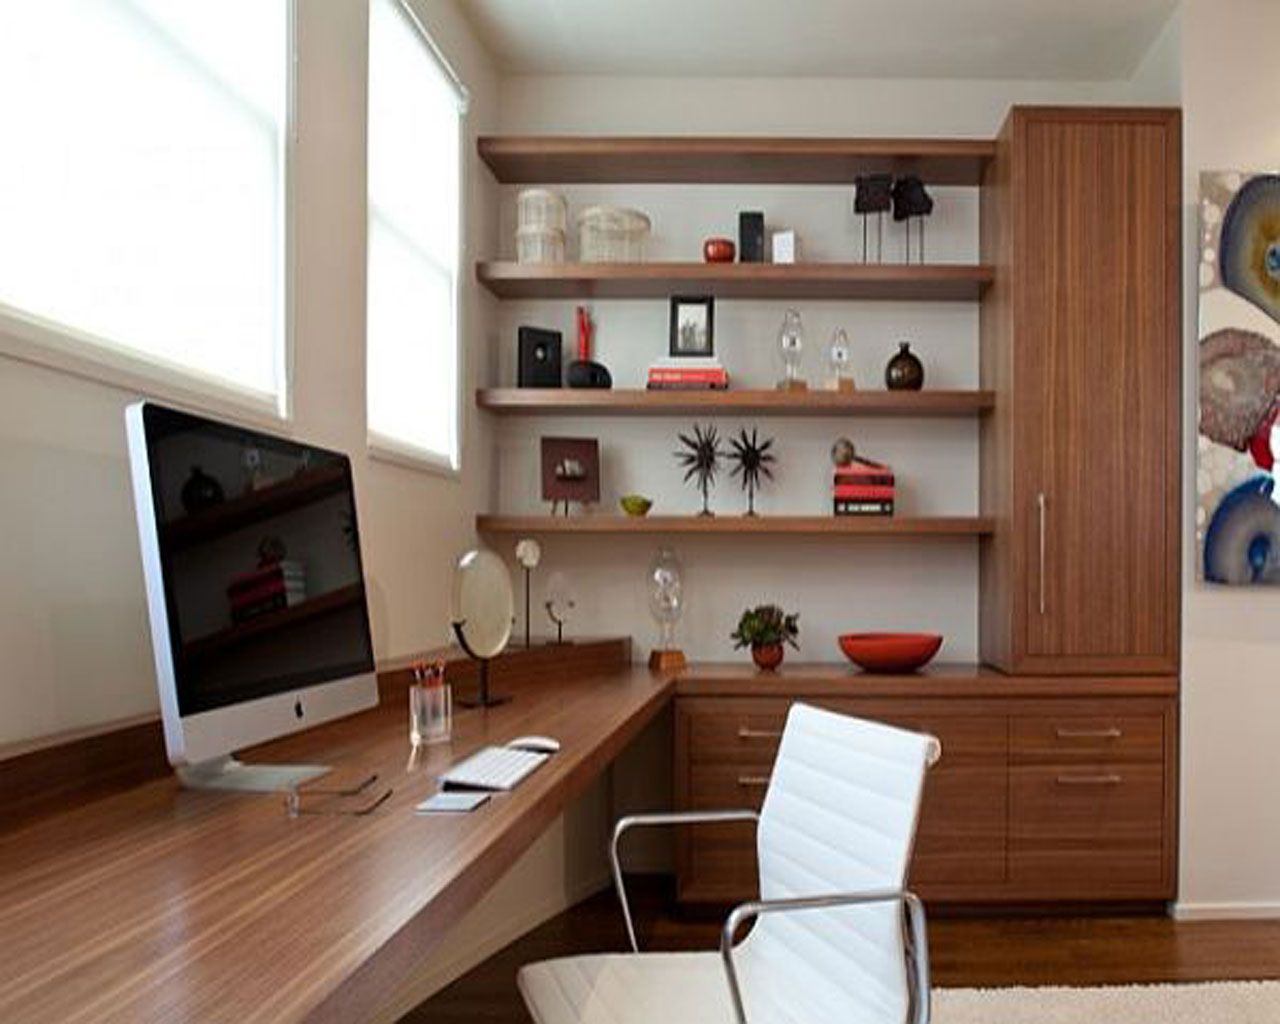 Do You Want To Fit A Small Homeoffice Into Your Home It Can